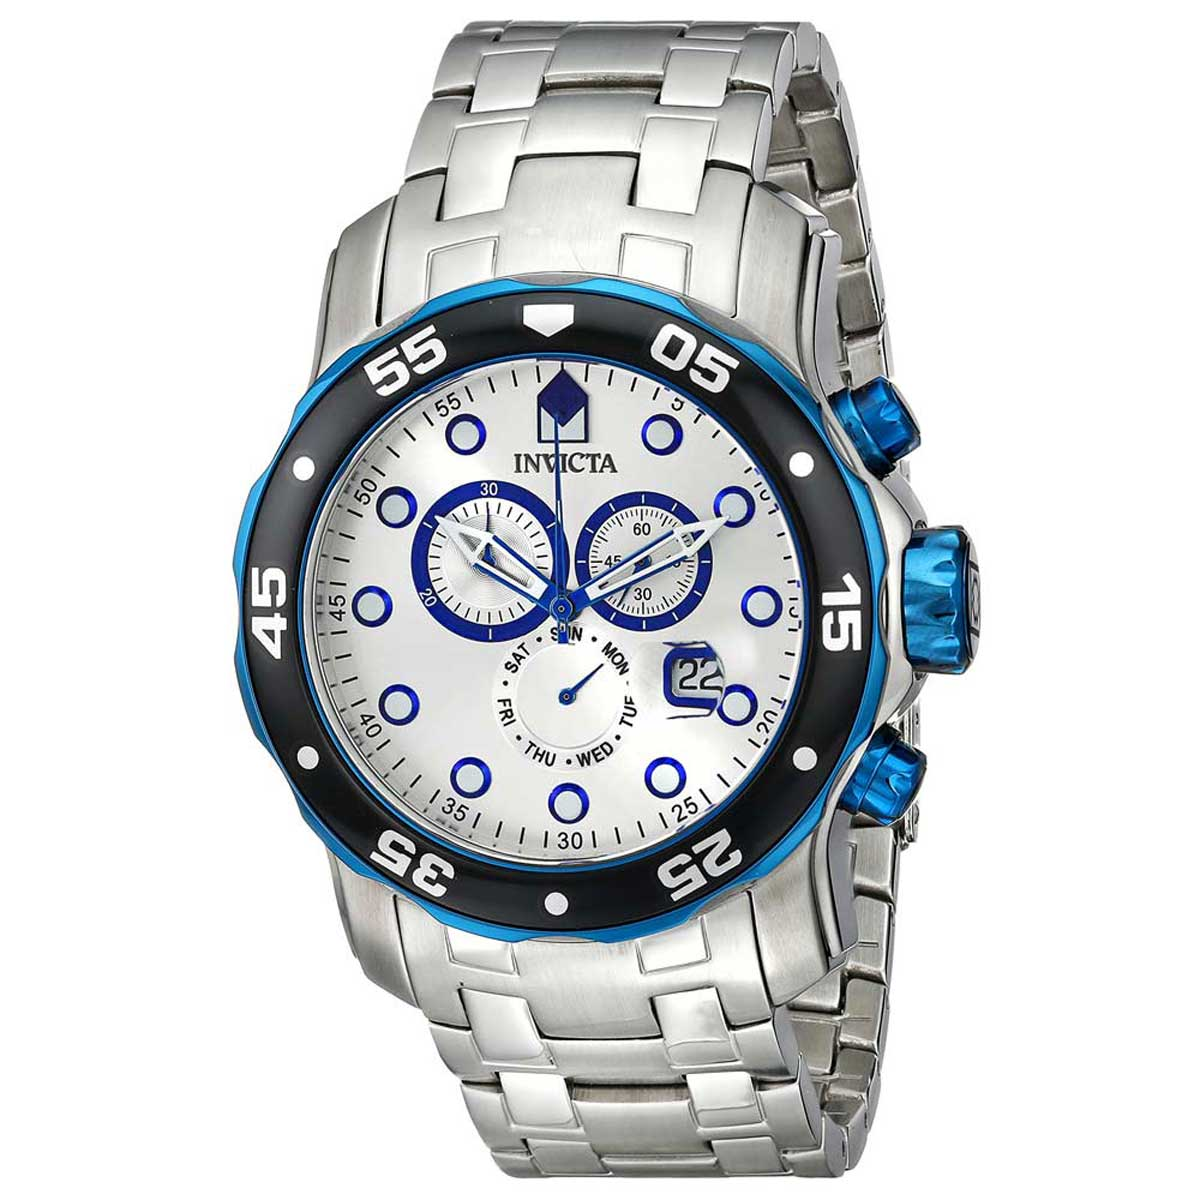 Invicta 80043 Men's Pro Diver Scuba Chronograph Silver Dial Stainless Steel Dive Watch